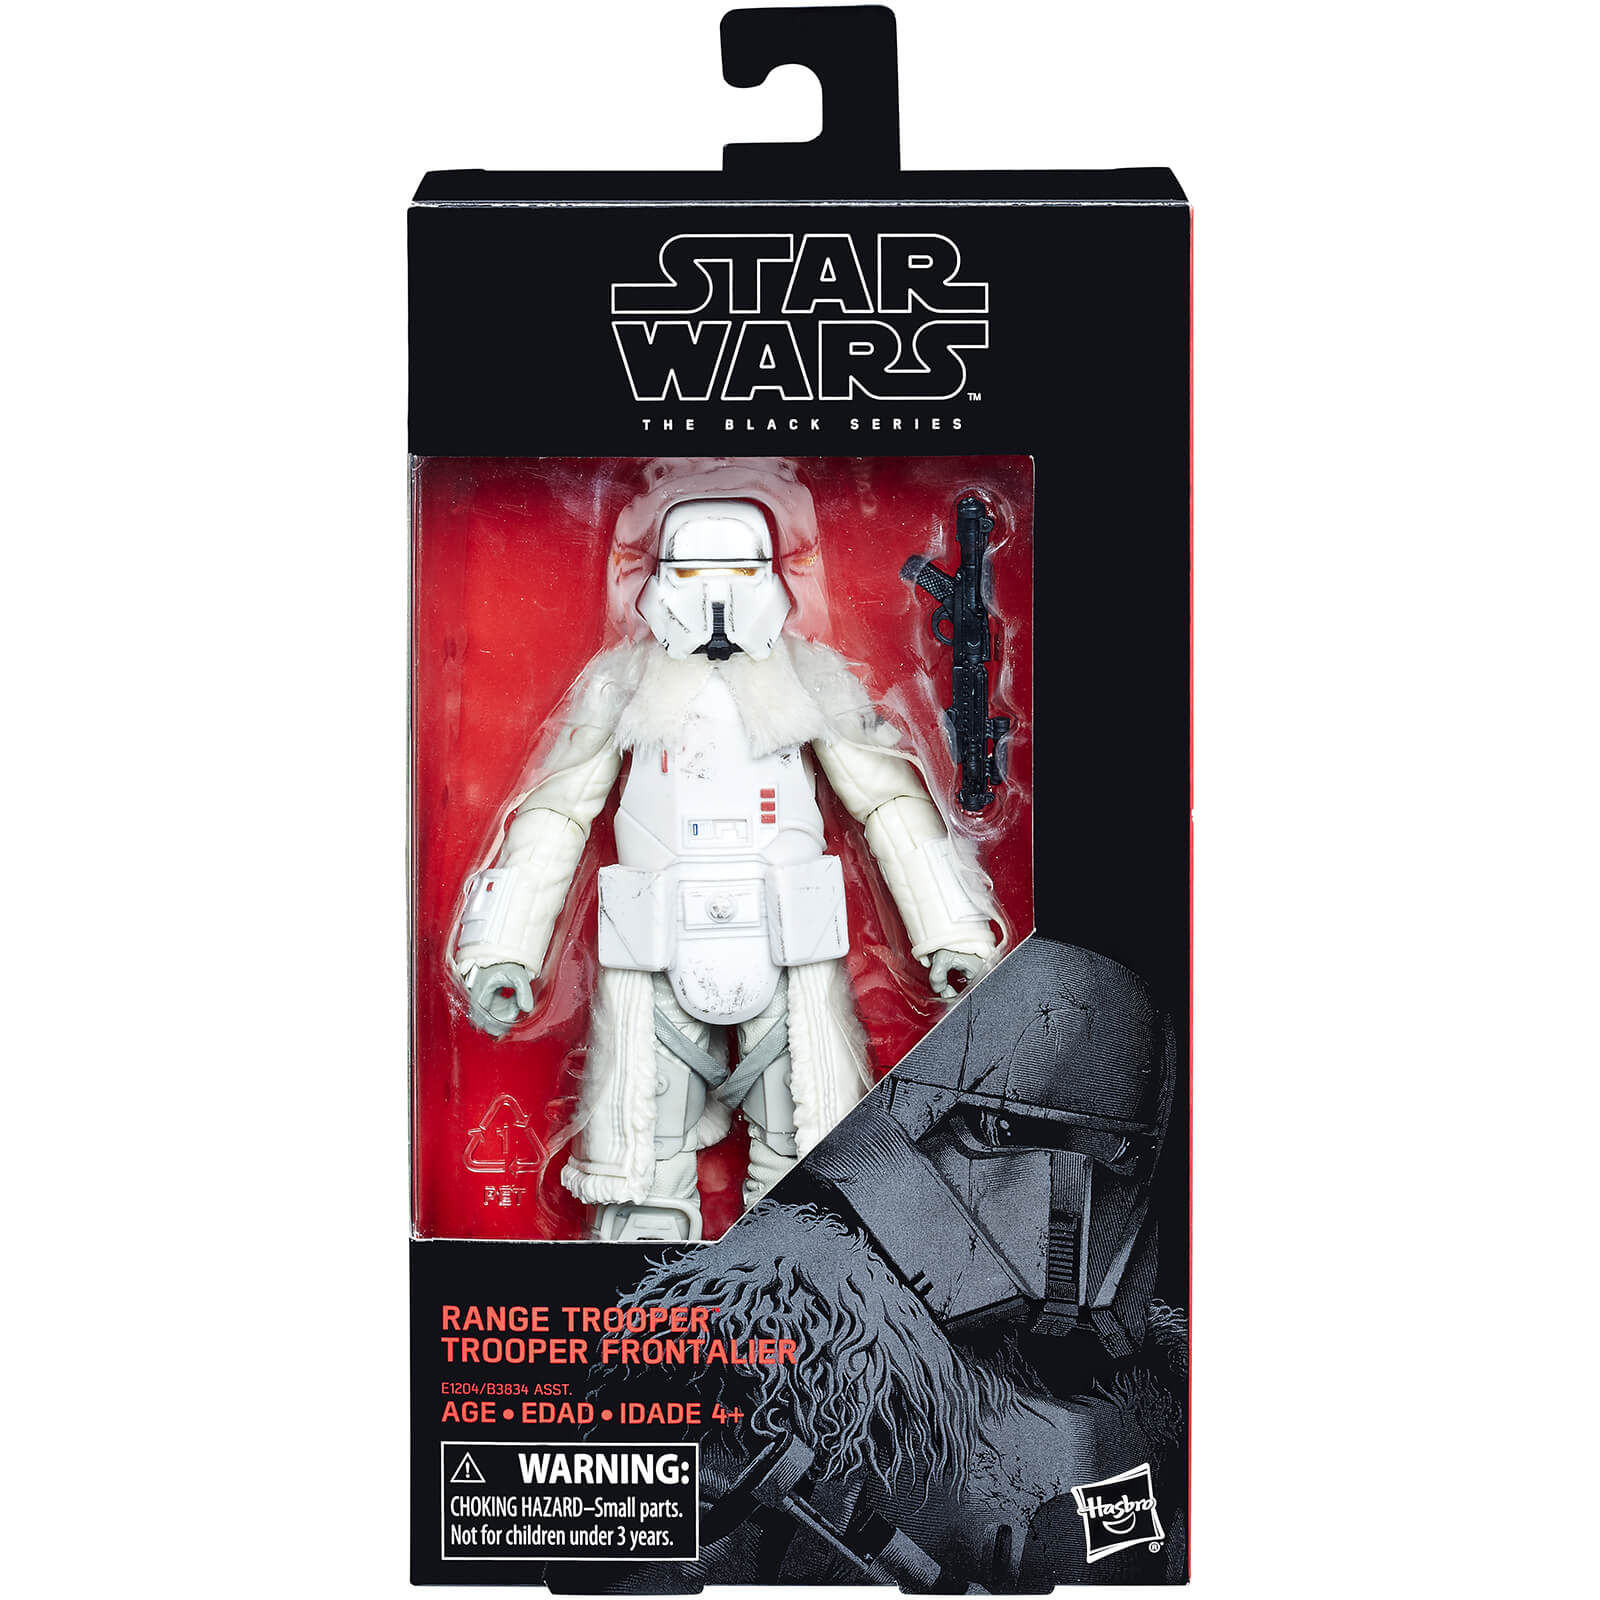 Hasbro Star Wars The Black Series Range Trooper 6-Inch Figure